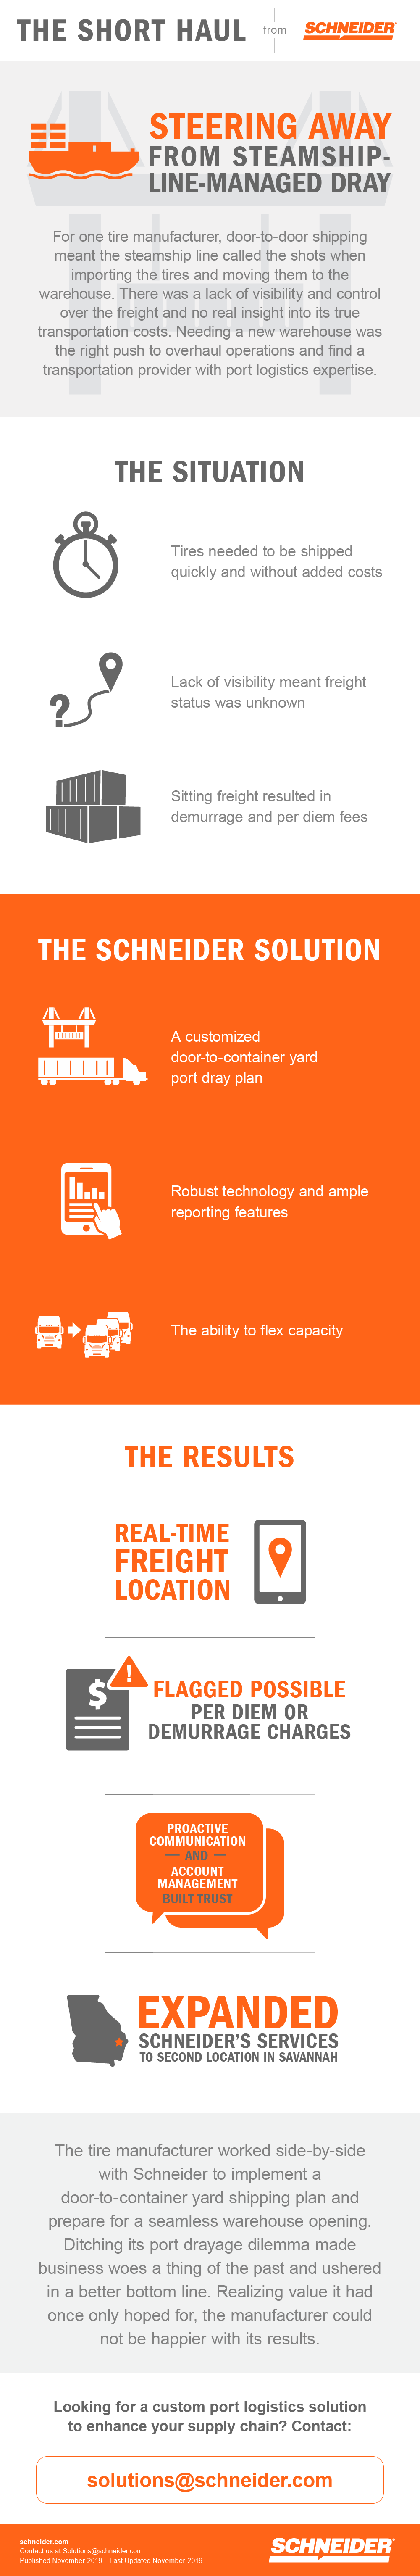 A tire manufacturer was routinely wondering where its freight was and consistently hit with added fees because of door-to-door shipping managed by the steamship line. Wanting more visibility and control of its freight, the manufacturer turned to Schneider, which implemented a door-to-container yard shipping plan with real-time visibility and no surprise charges.